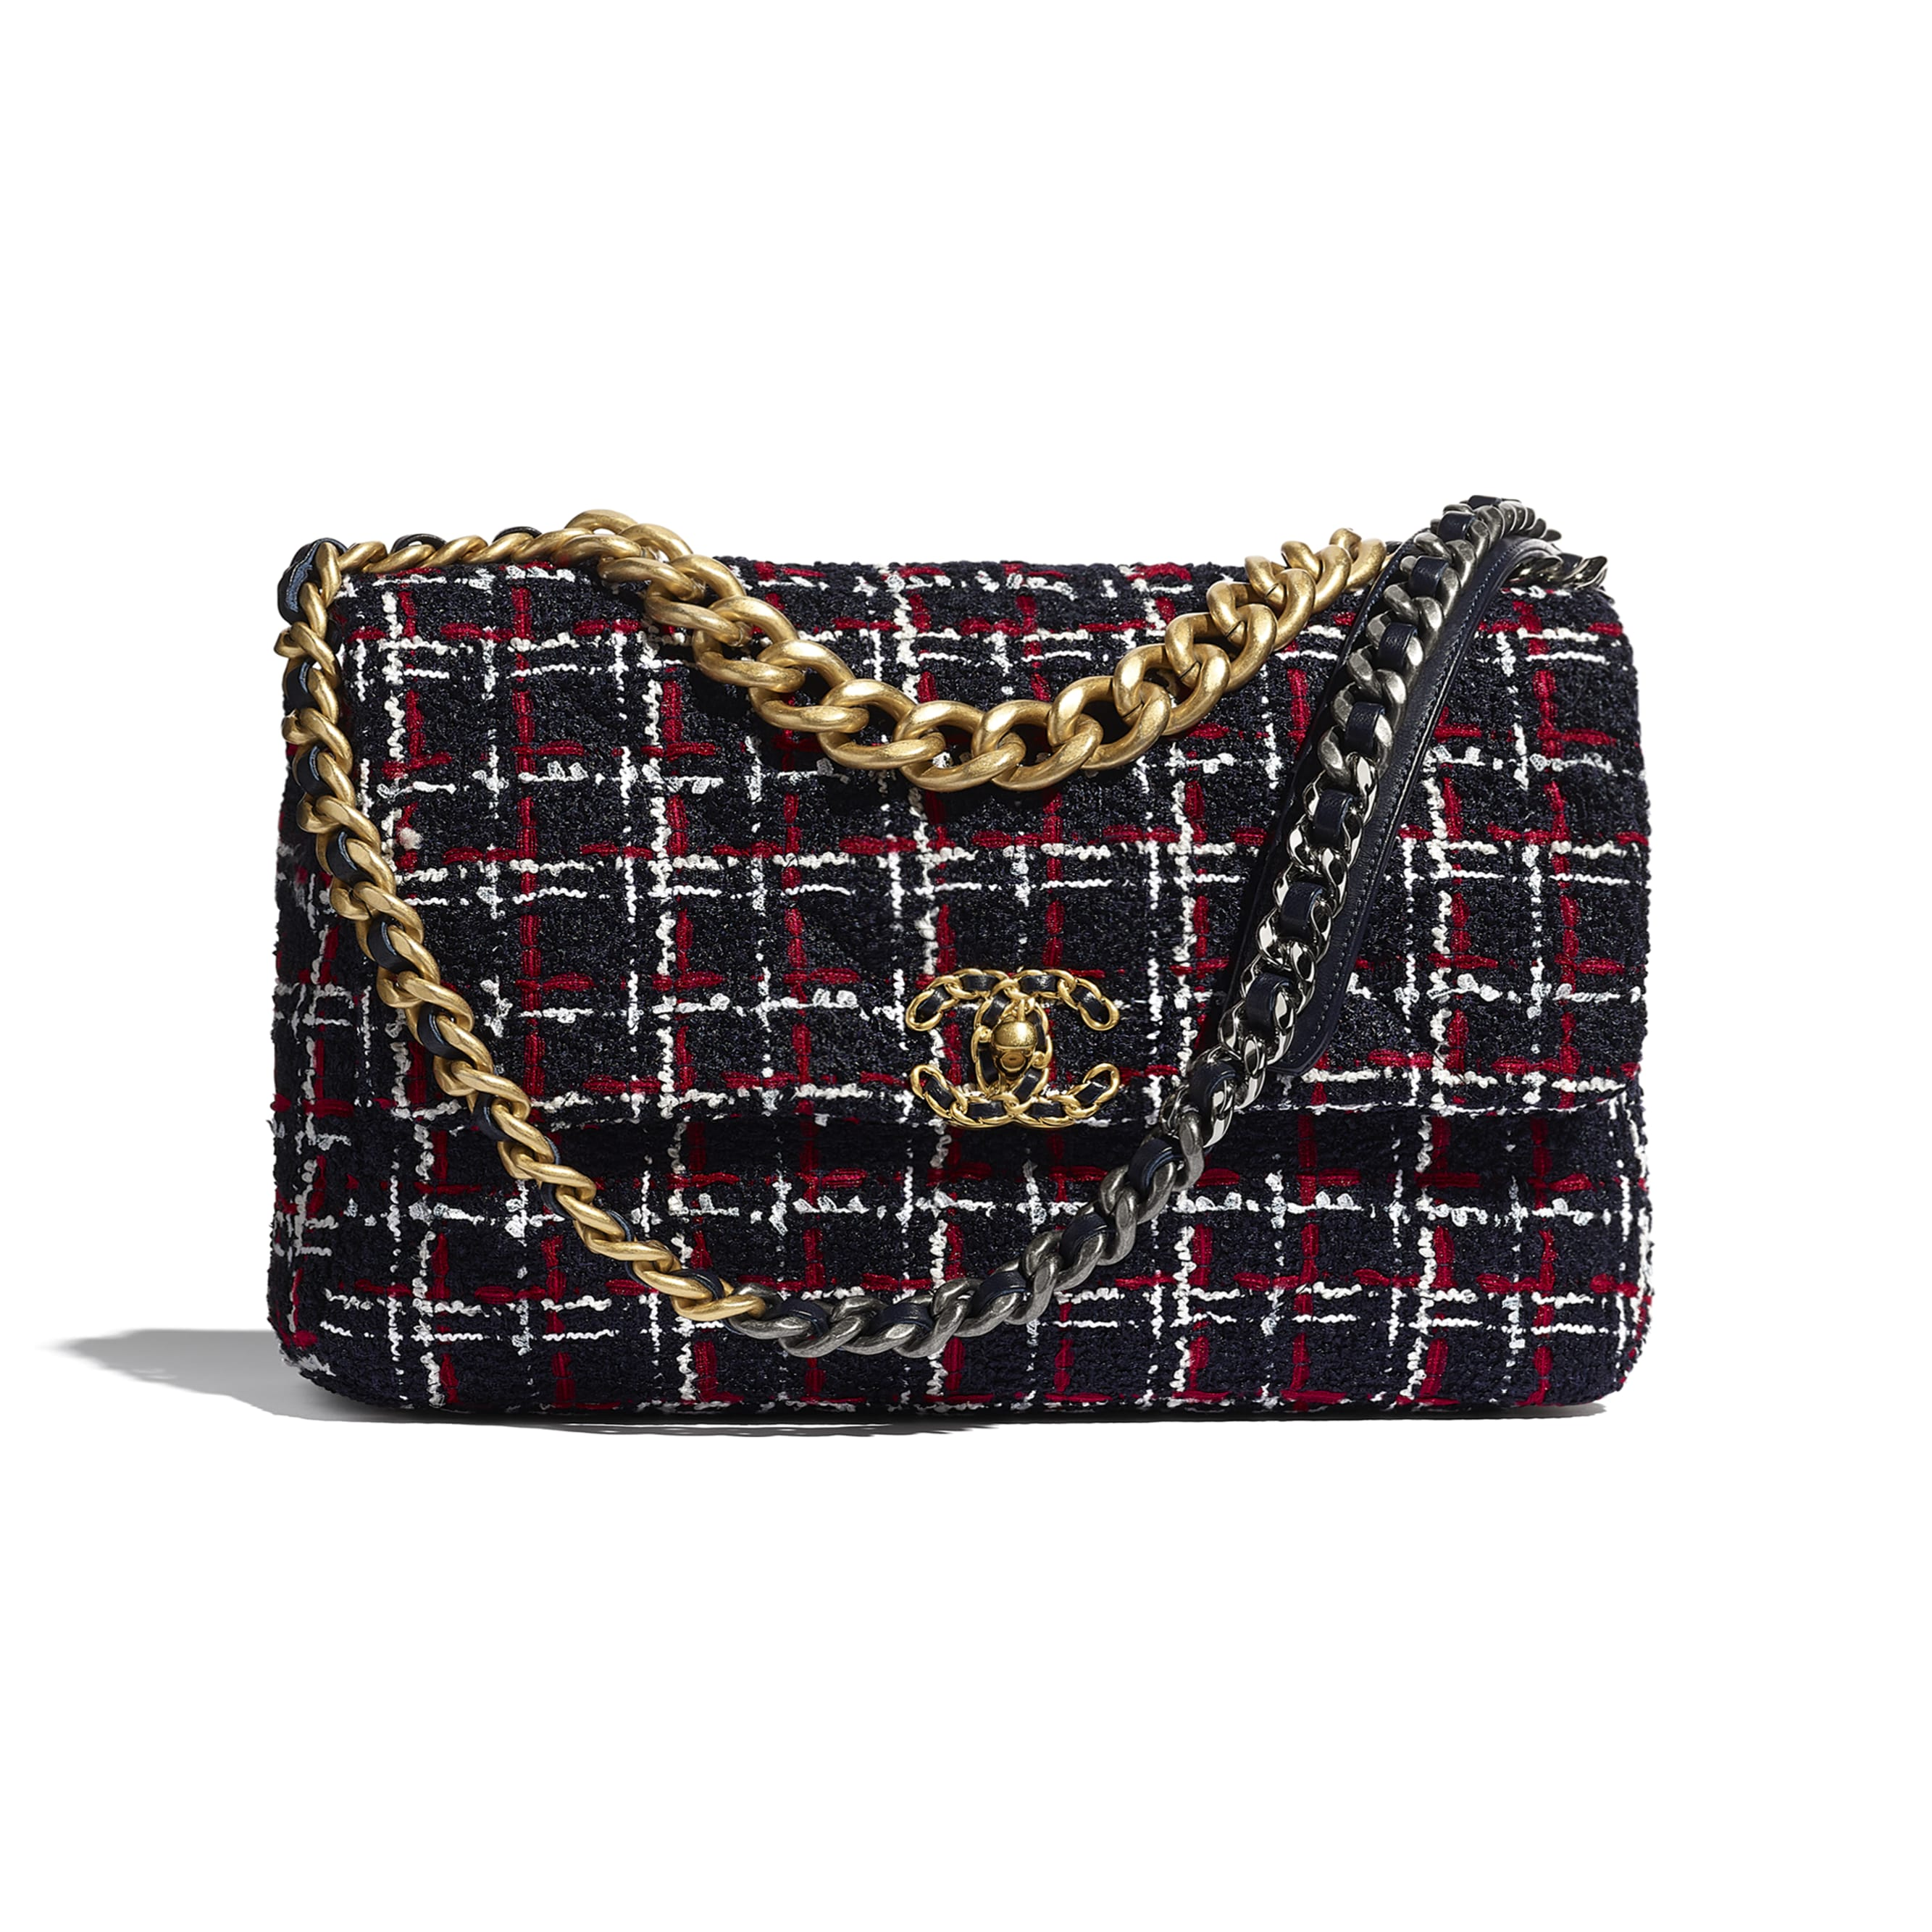 CHANEL 19 Large Flap Bag - Navy Blue, White & Red - Tweed, Gold-Tone, Silver-Tone & Ruthenium-Finish Metal - Default view - see standard sized version